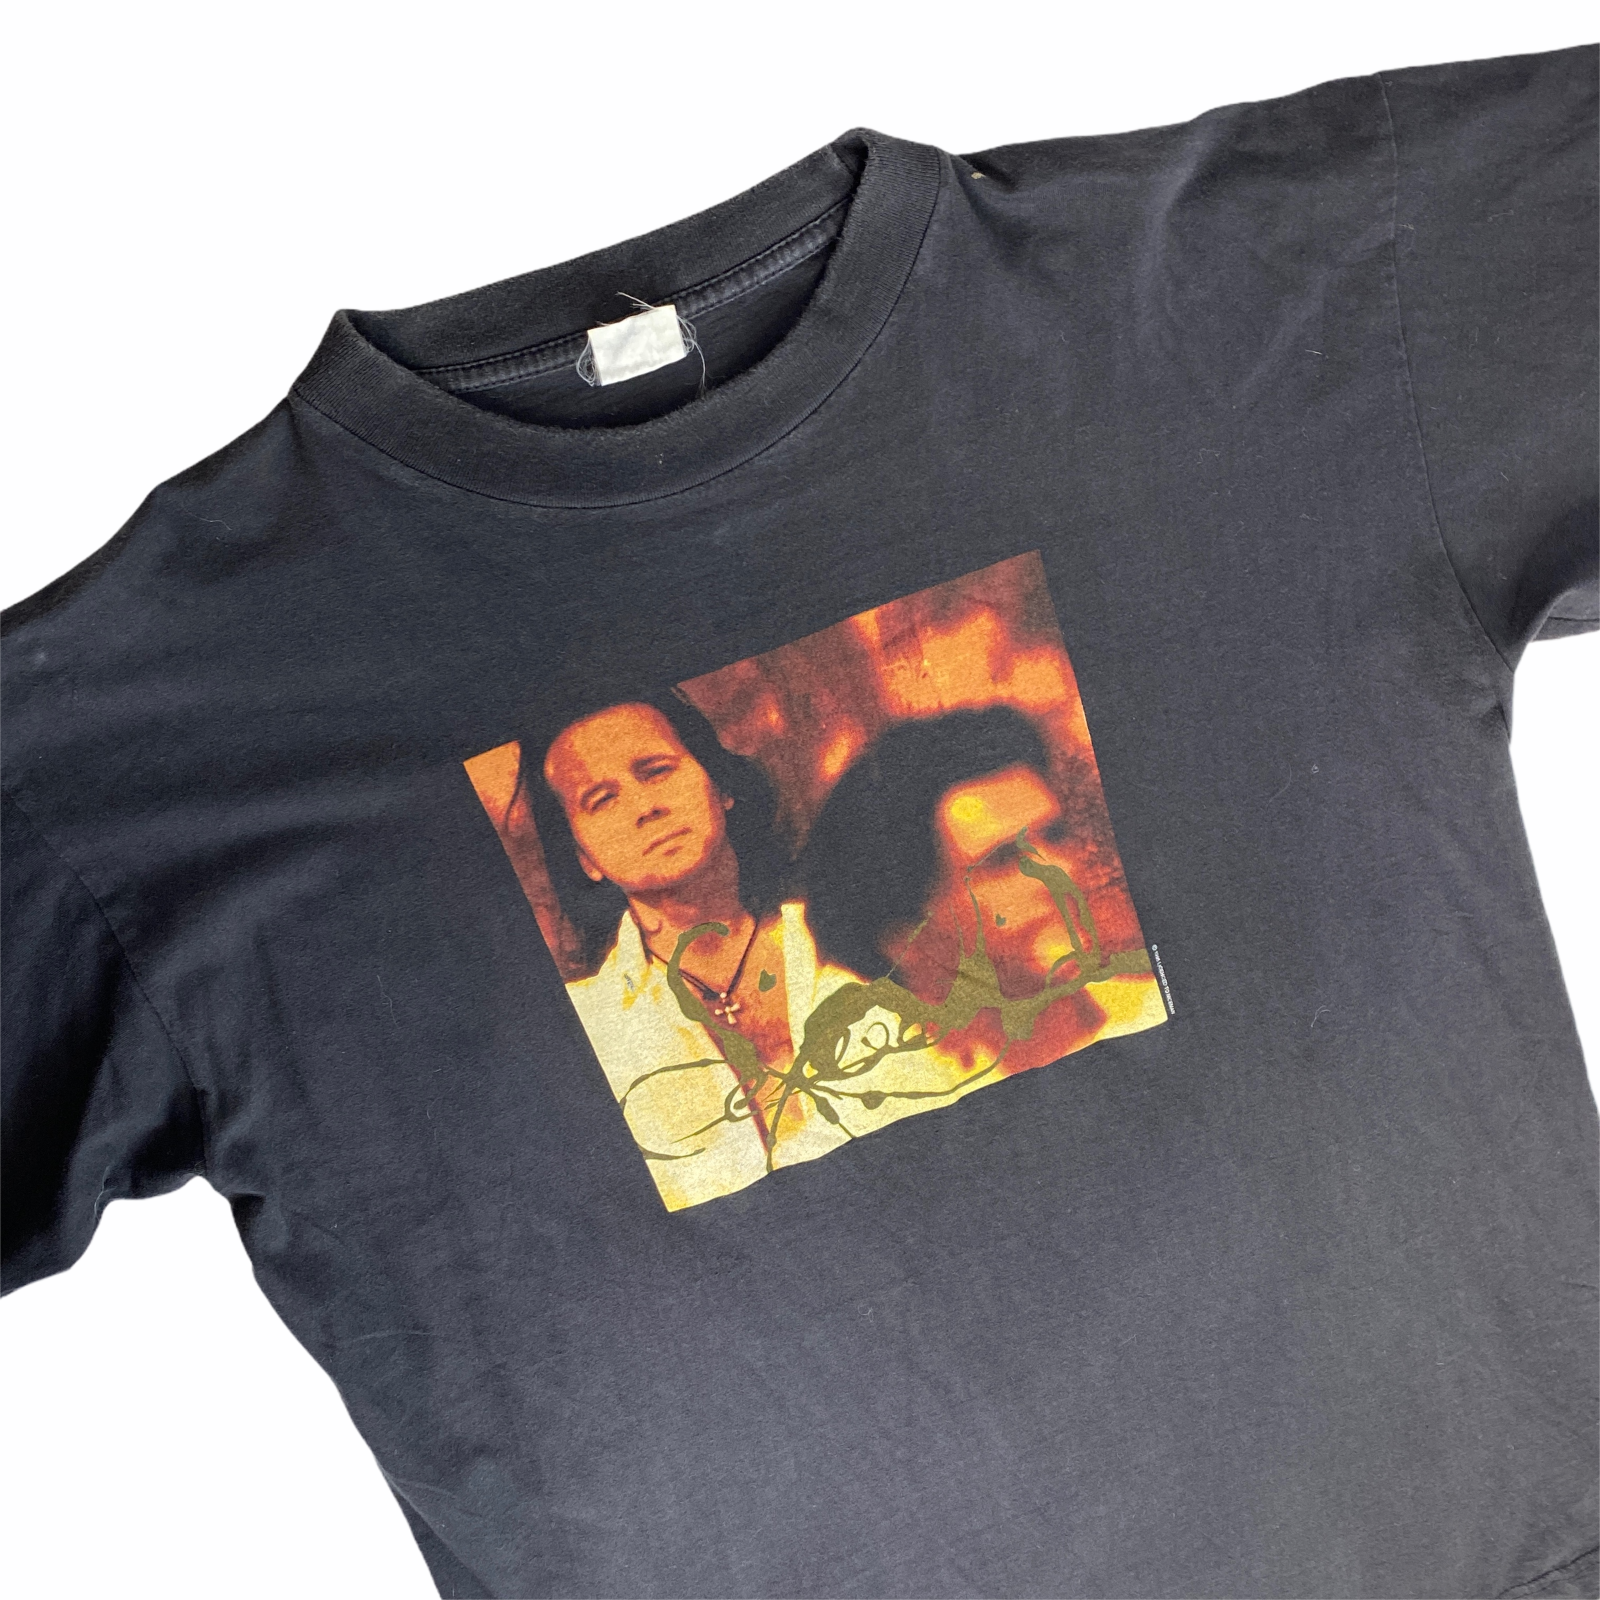 Simple Minds T Shirt Good News From The Next World 1995 Tour Black New Wave Band - $98.99